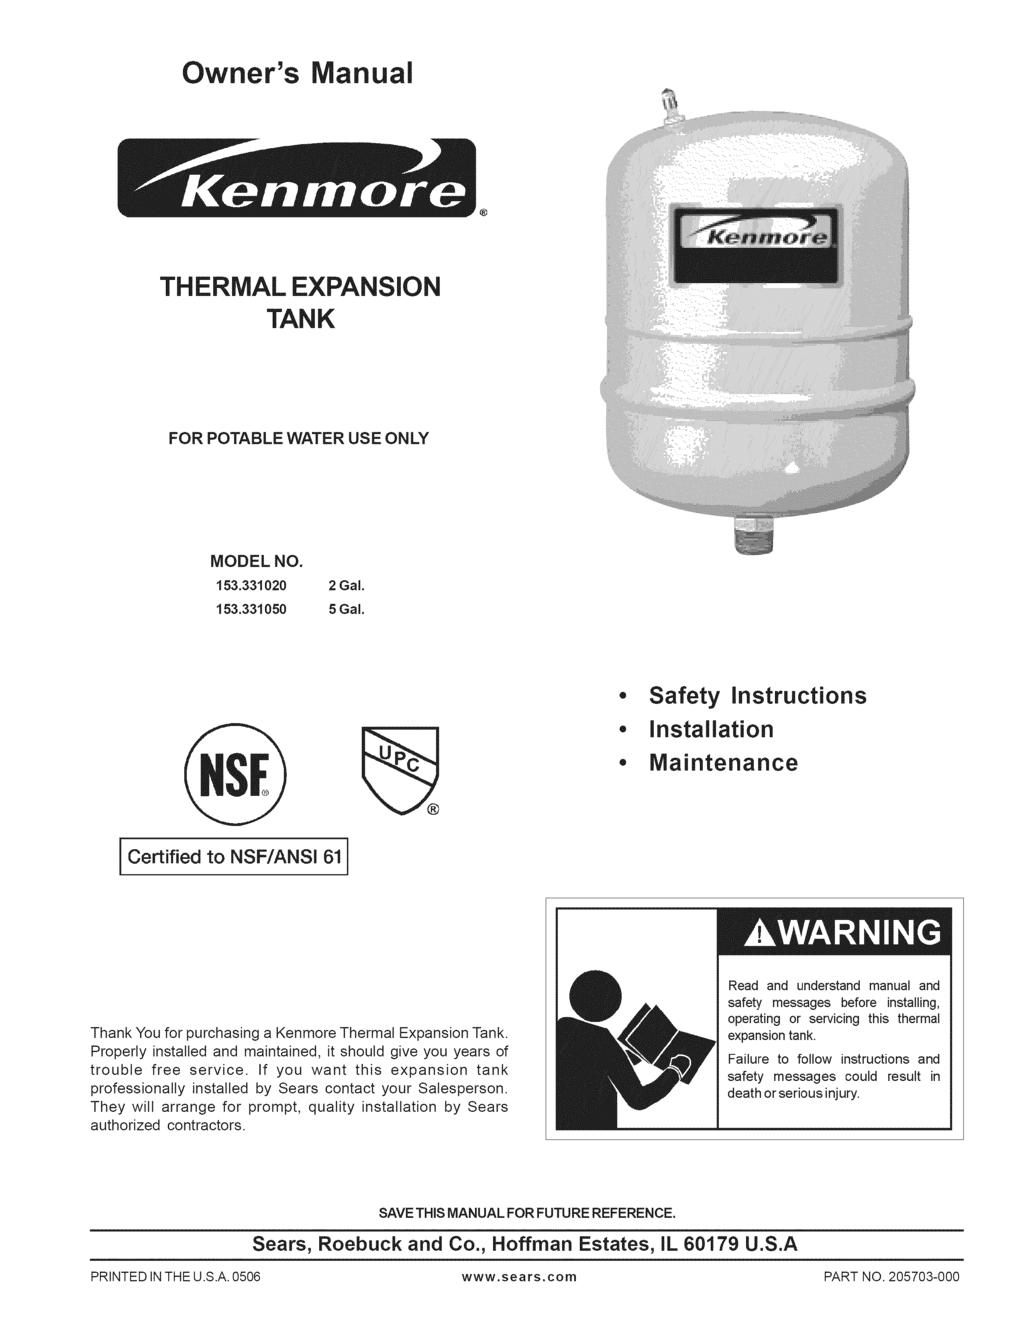 Thermal Expansion Tank Pdf Argo Wiring Diagram 3p Arm Owners Manual For Potable Water Use Only Model No 153331020 2 Gal